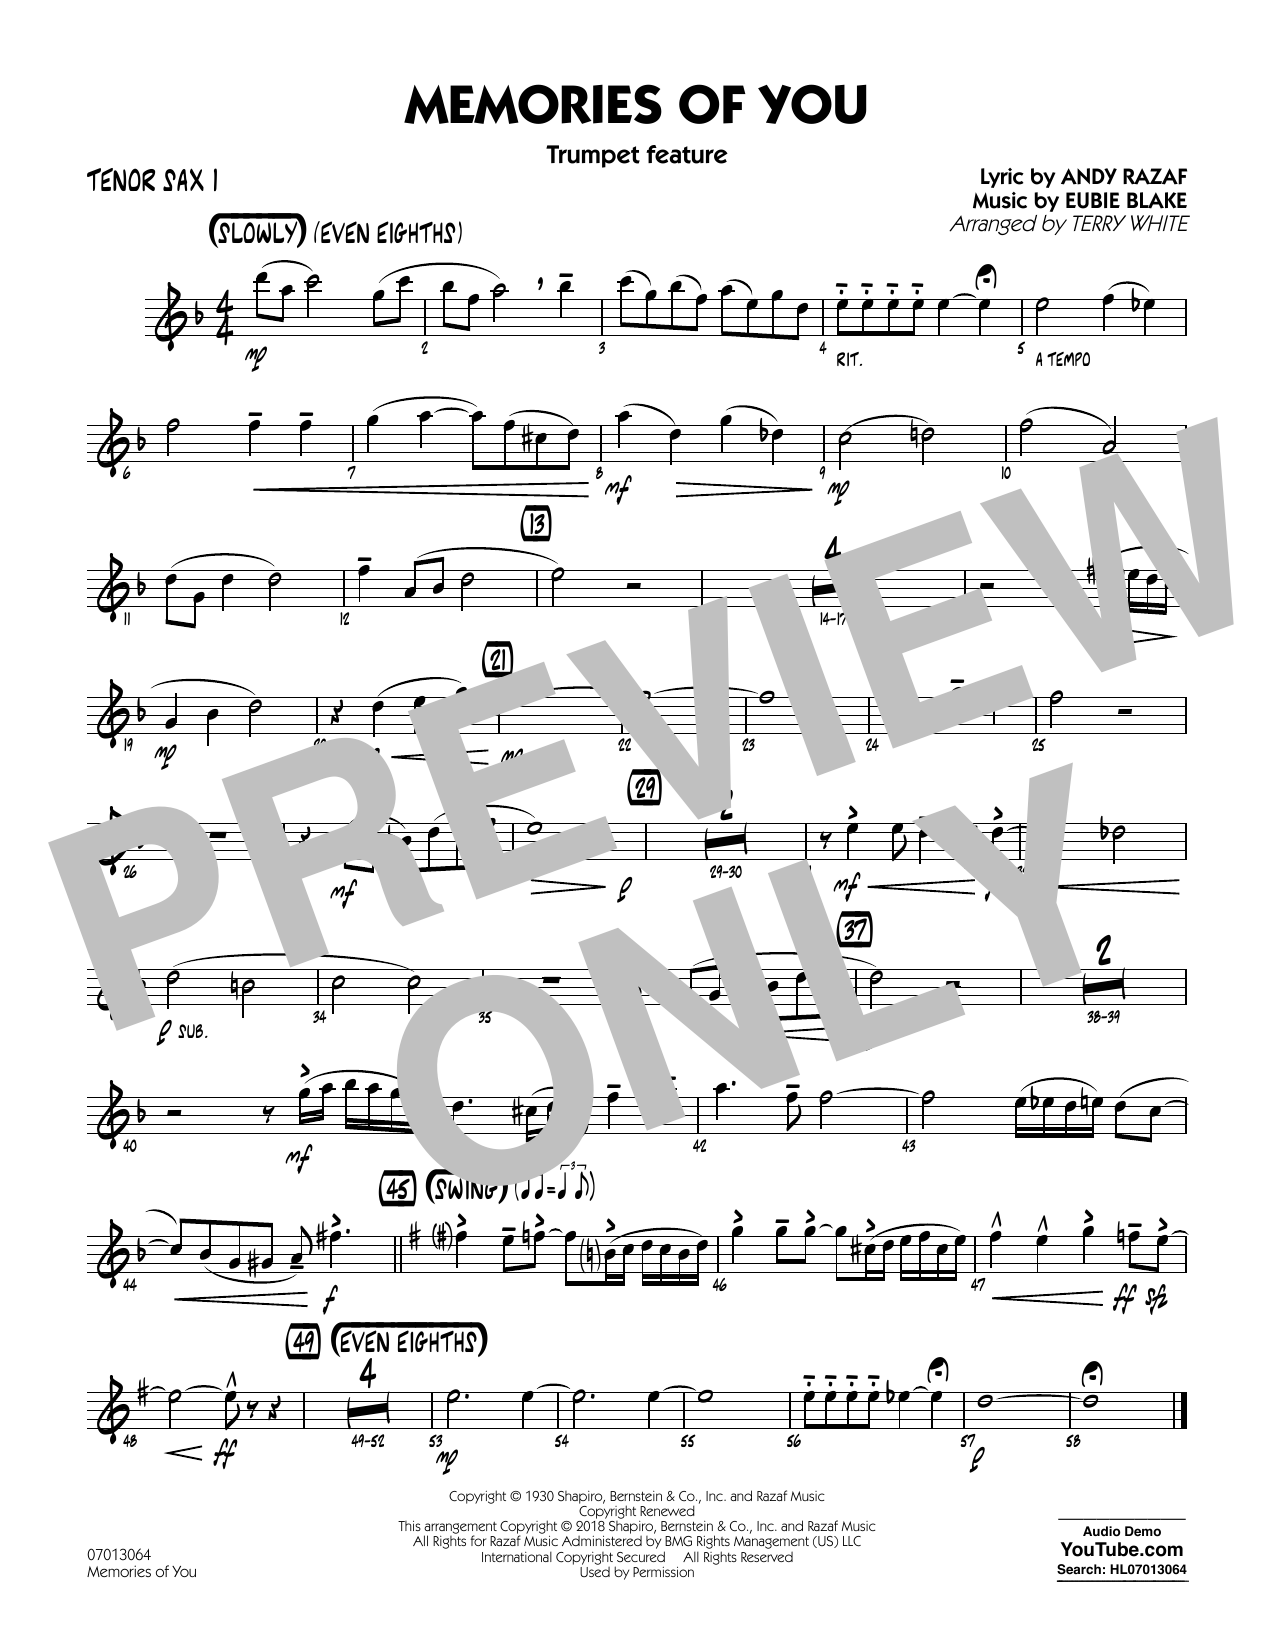 Terry White Memories of You (Trumpet Feature) - Tenor Sax 1 sheet music notes and chords. Download Printable PDF.